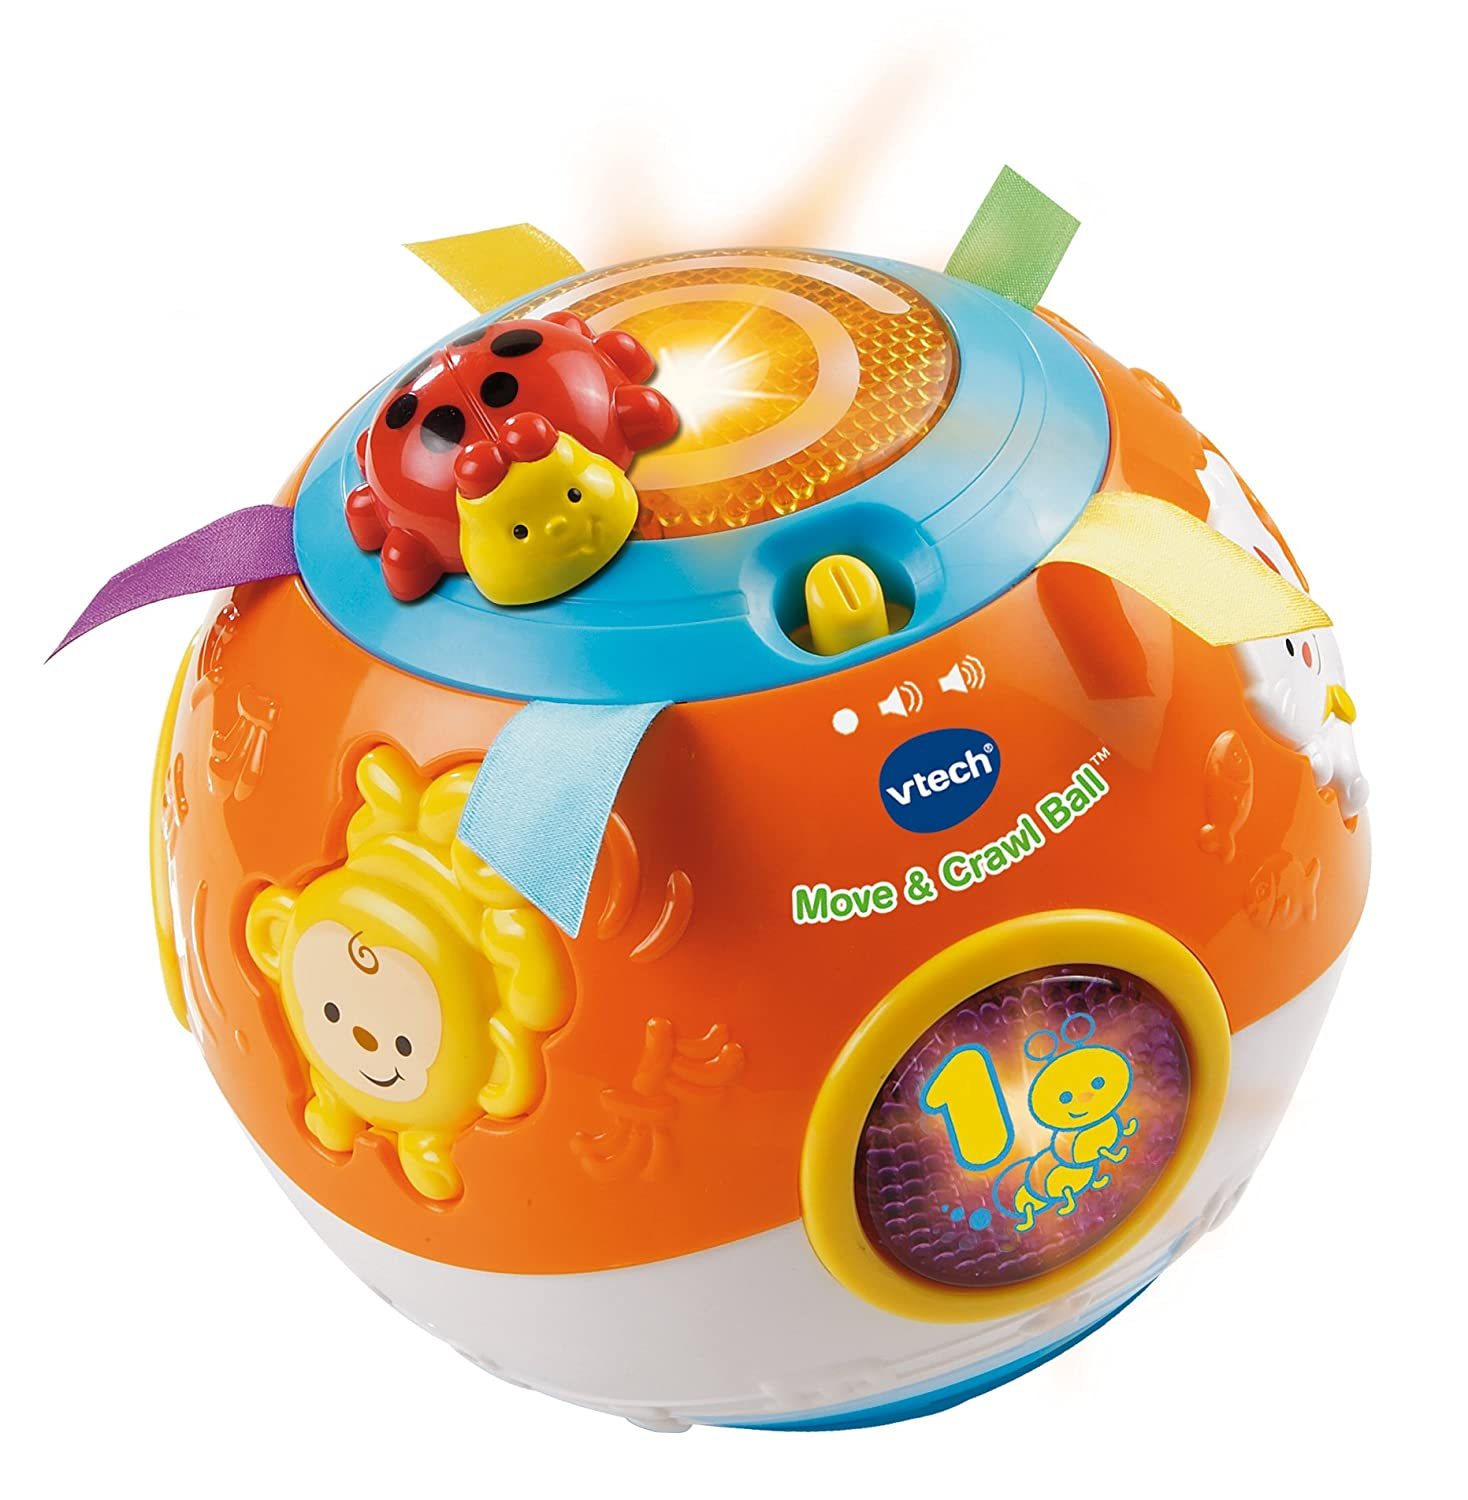 Motorized Move and Crawl Baby Ball by VTech